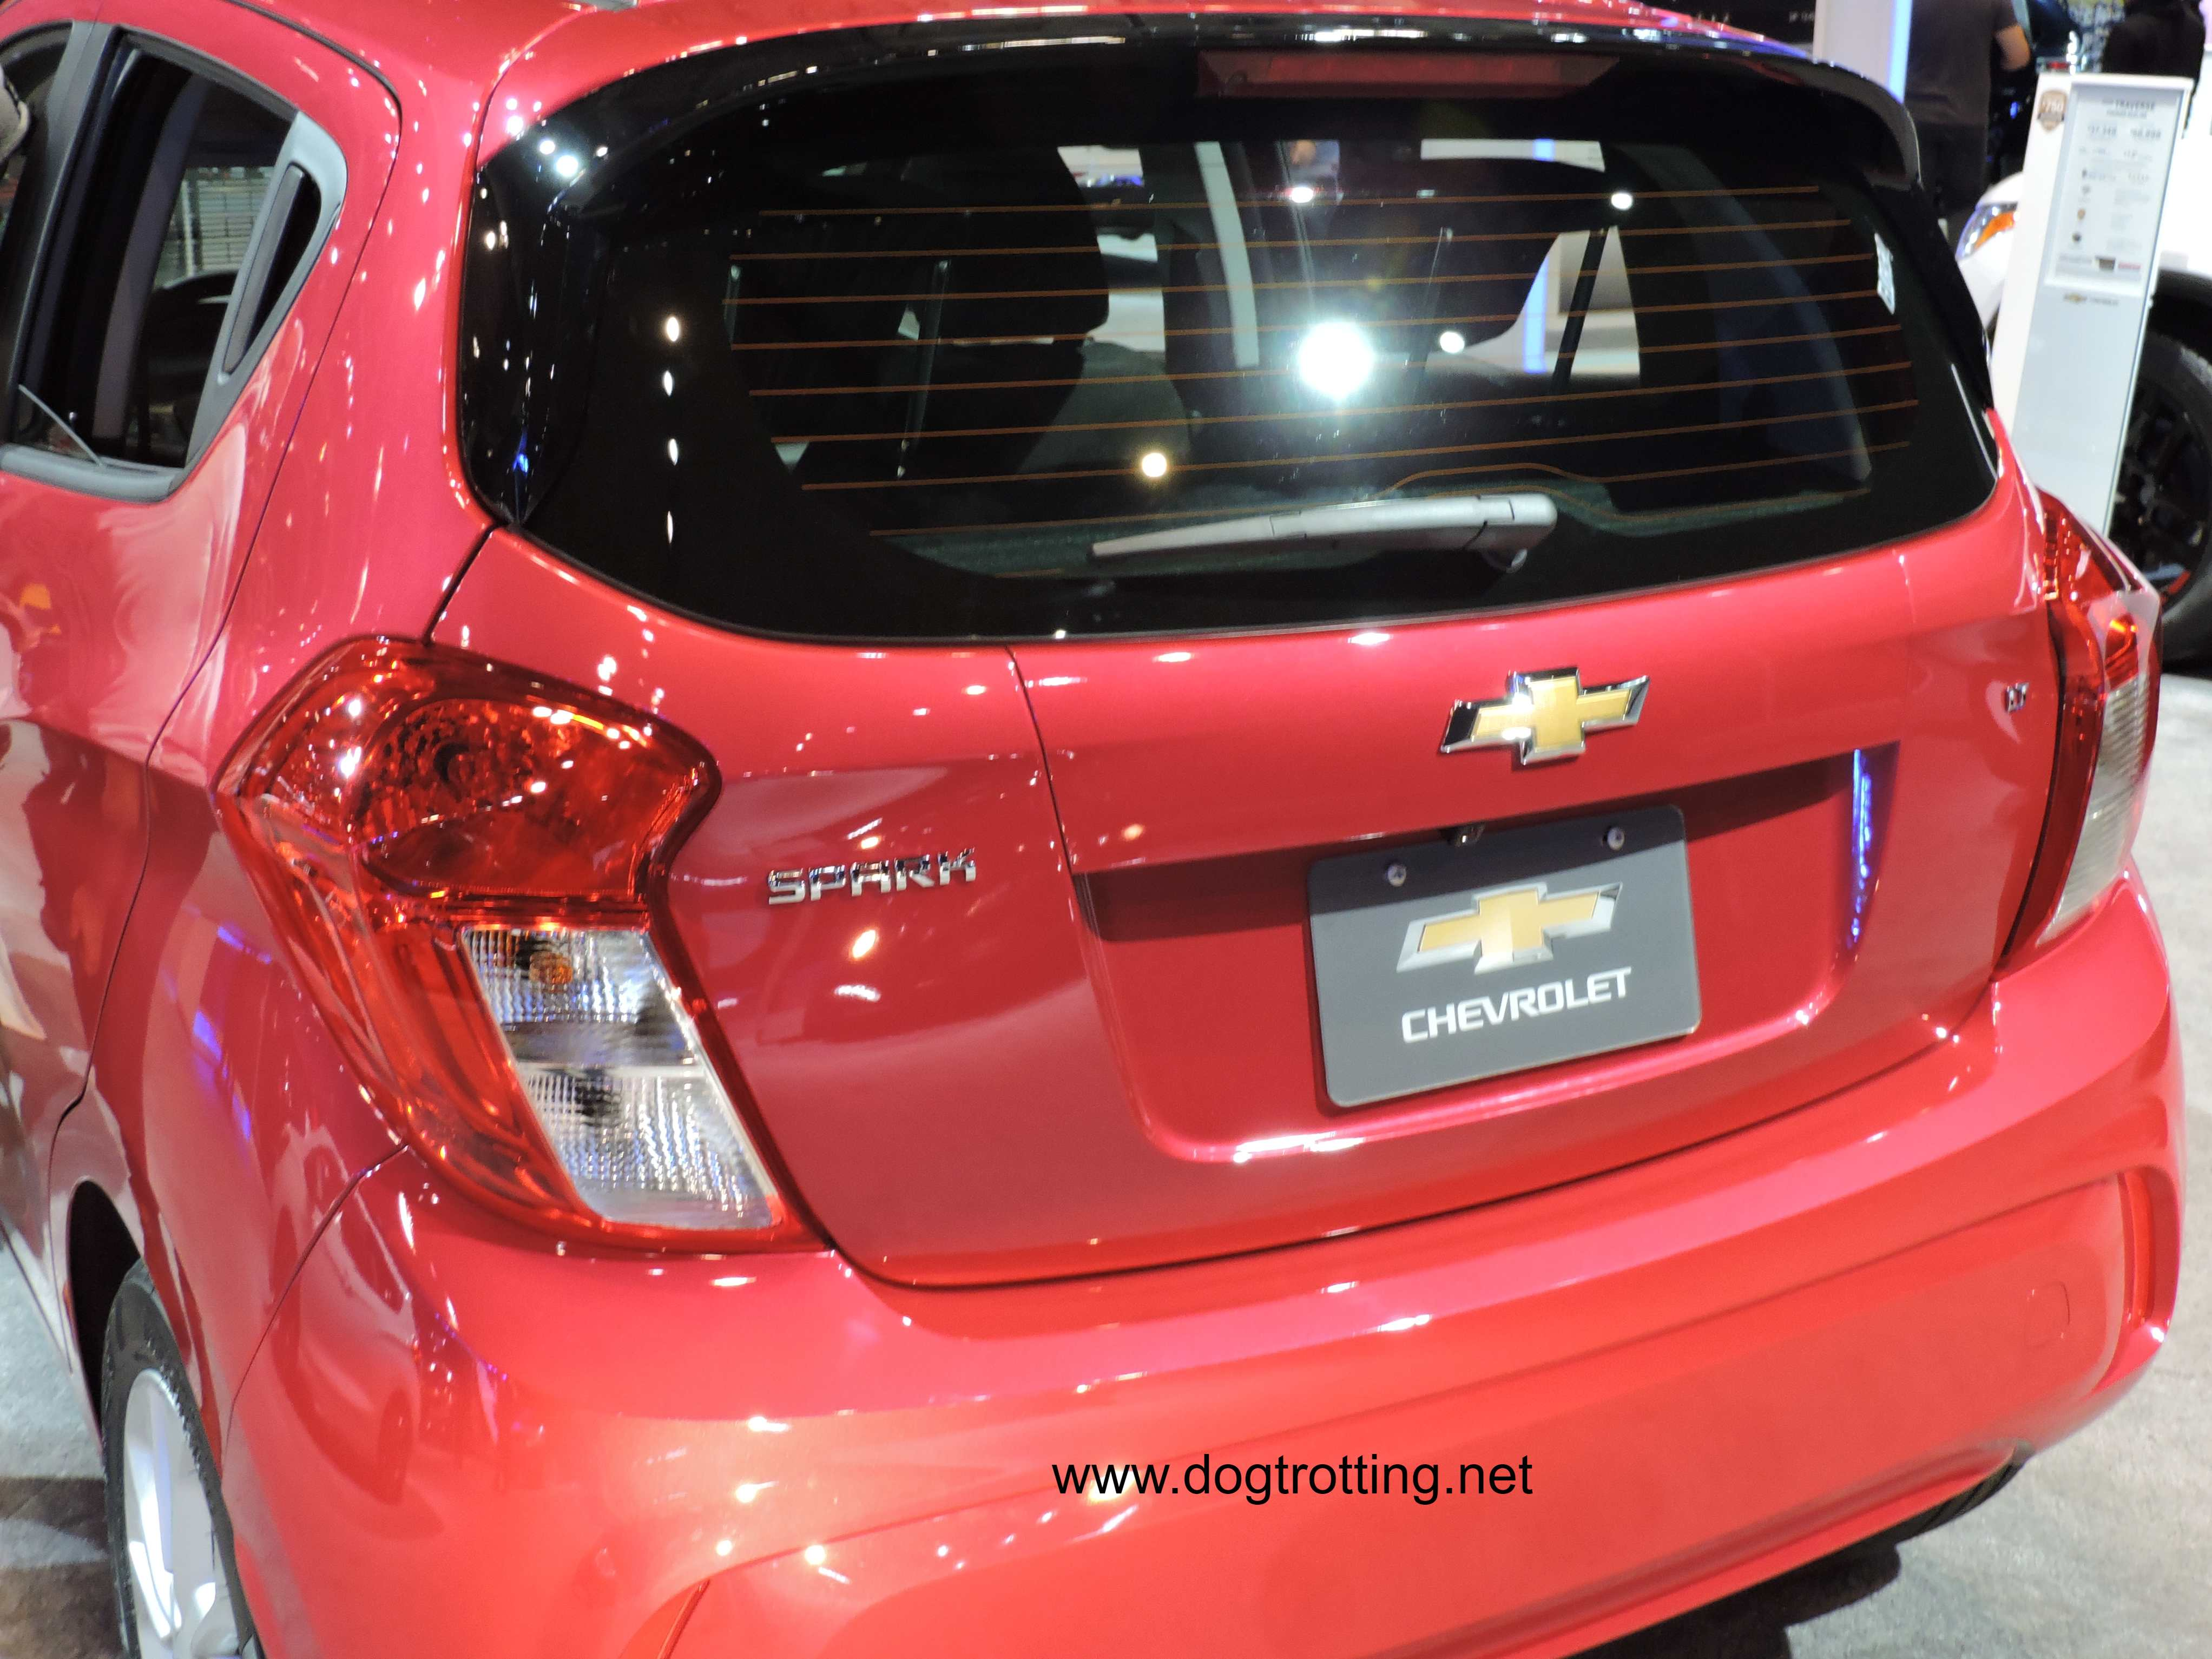 red spark car at auto show